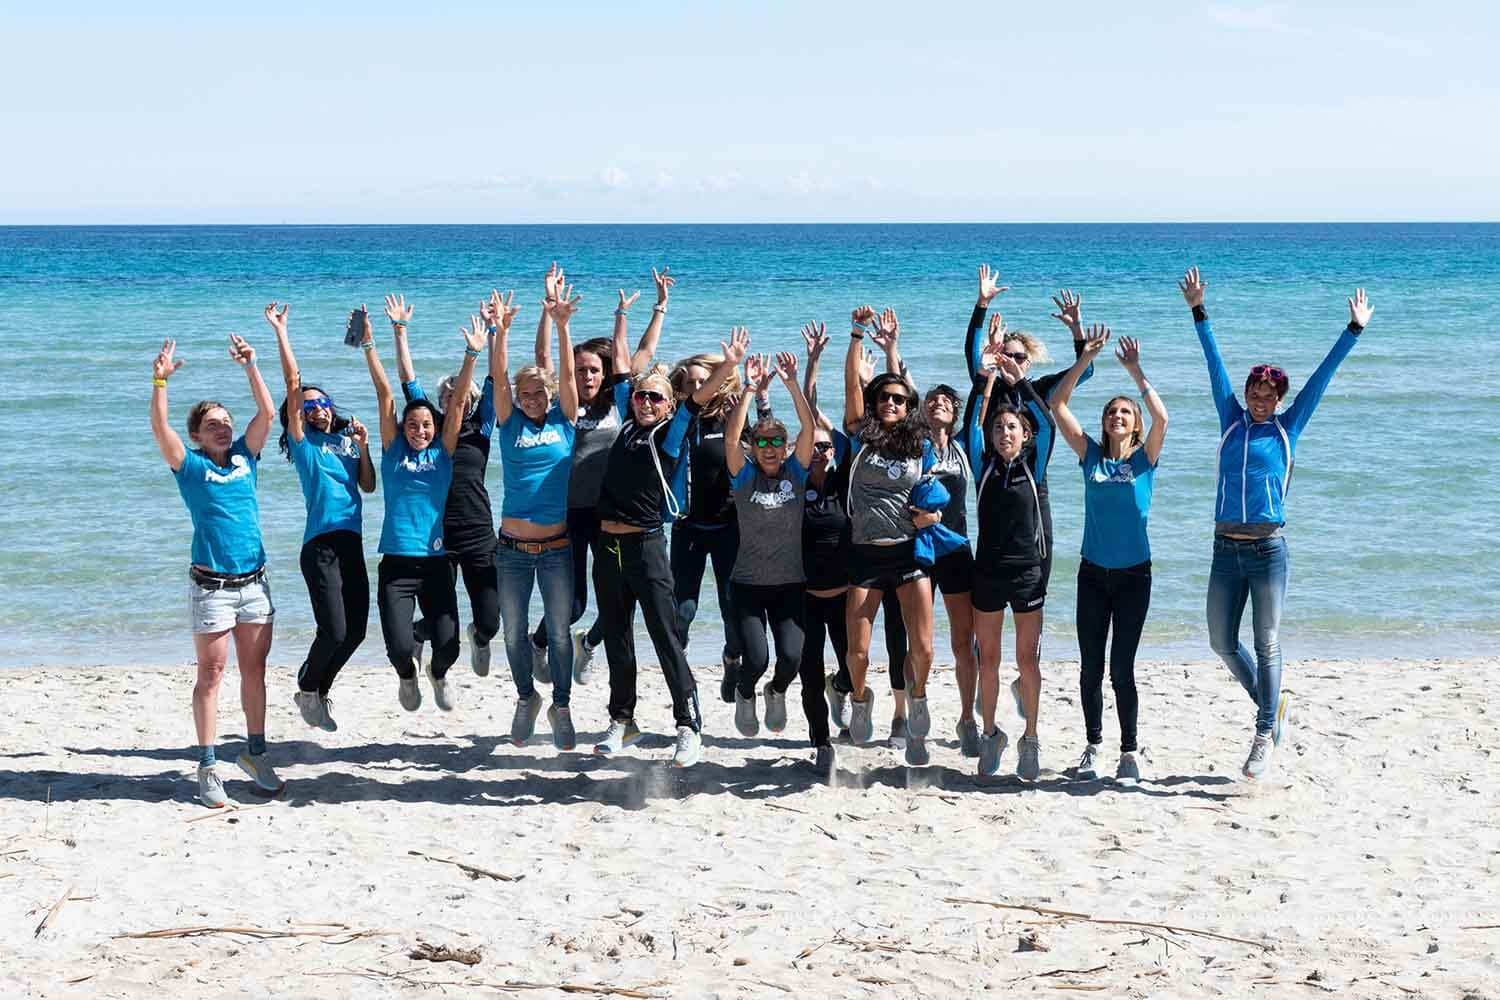 HOKA athletes on the beach in Mallorca